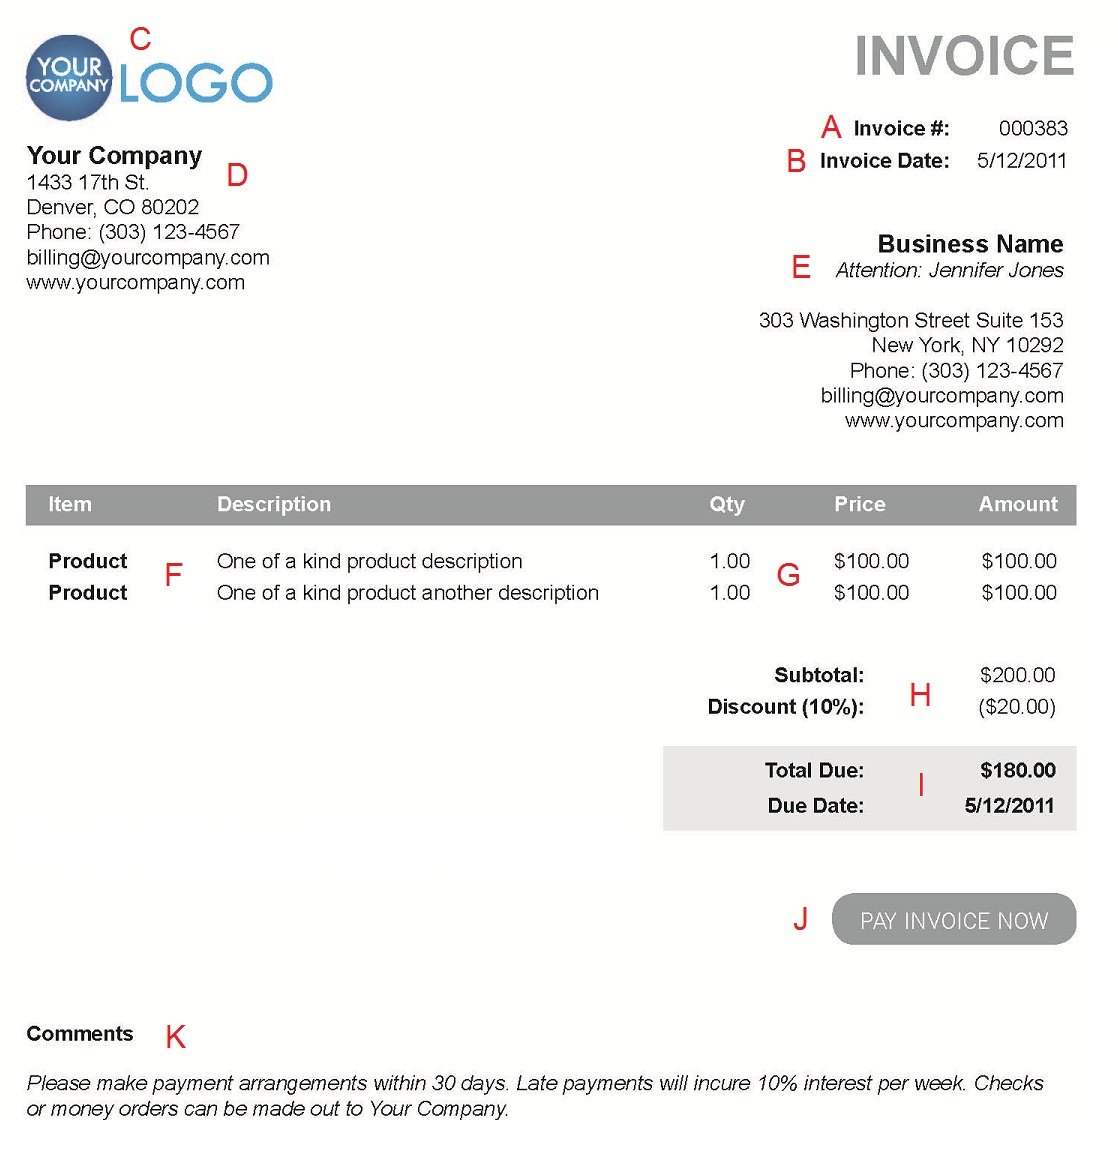 Coolmathgamesus  Pretty The  Different Sections Of An Electronic Payment Invoice With Fair A  With Lovely Invoice Price Of Car Also Sample Invoice Excel In Addition Online Invoices Free And Service Invoice Template Excel As Well As How To Type An Invoice Additionally Express Invoice Login From Paysimplecom With Coolmathgamesus  Fair The  Different Sections Of An Electronic Payment Invoice With Lovely A  And Pretty Invoice Price Of Car Also Sample Invoice Excel In Addition Online Invoices Free From Paysimplecom